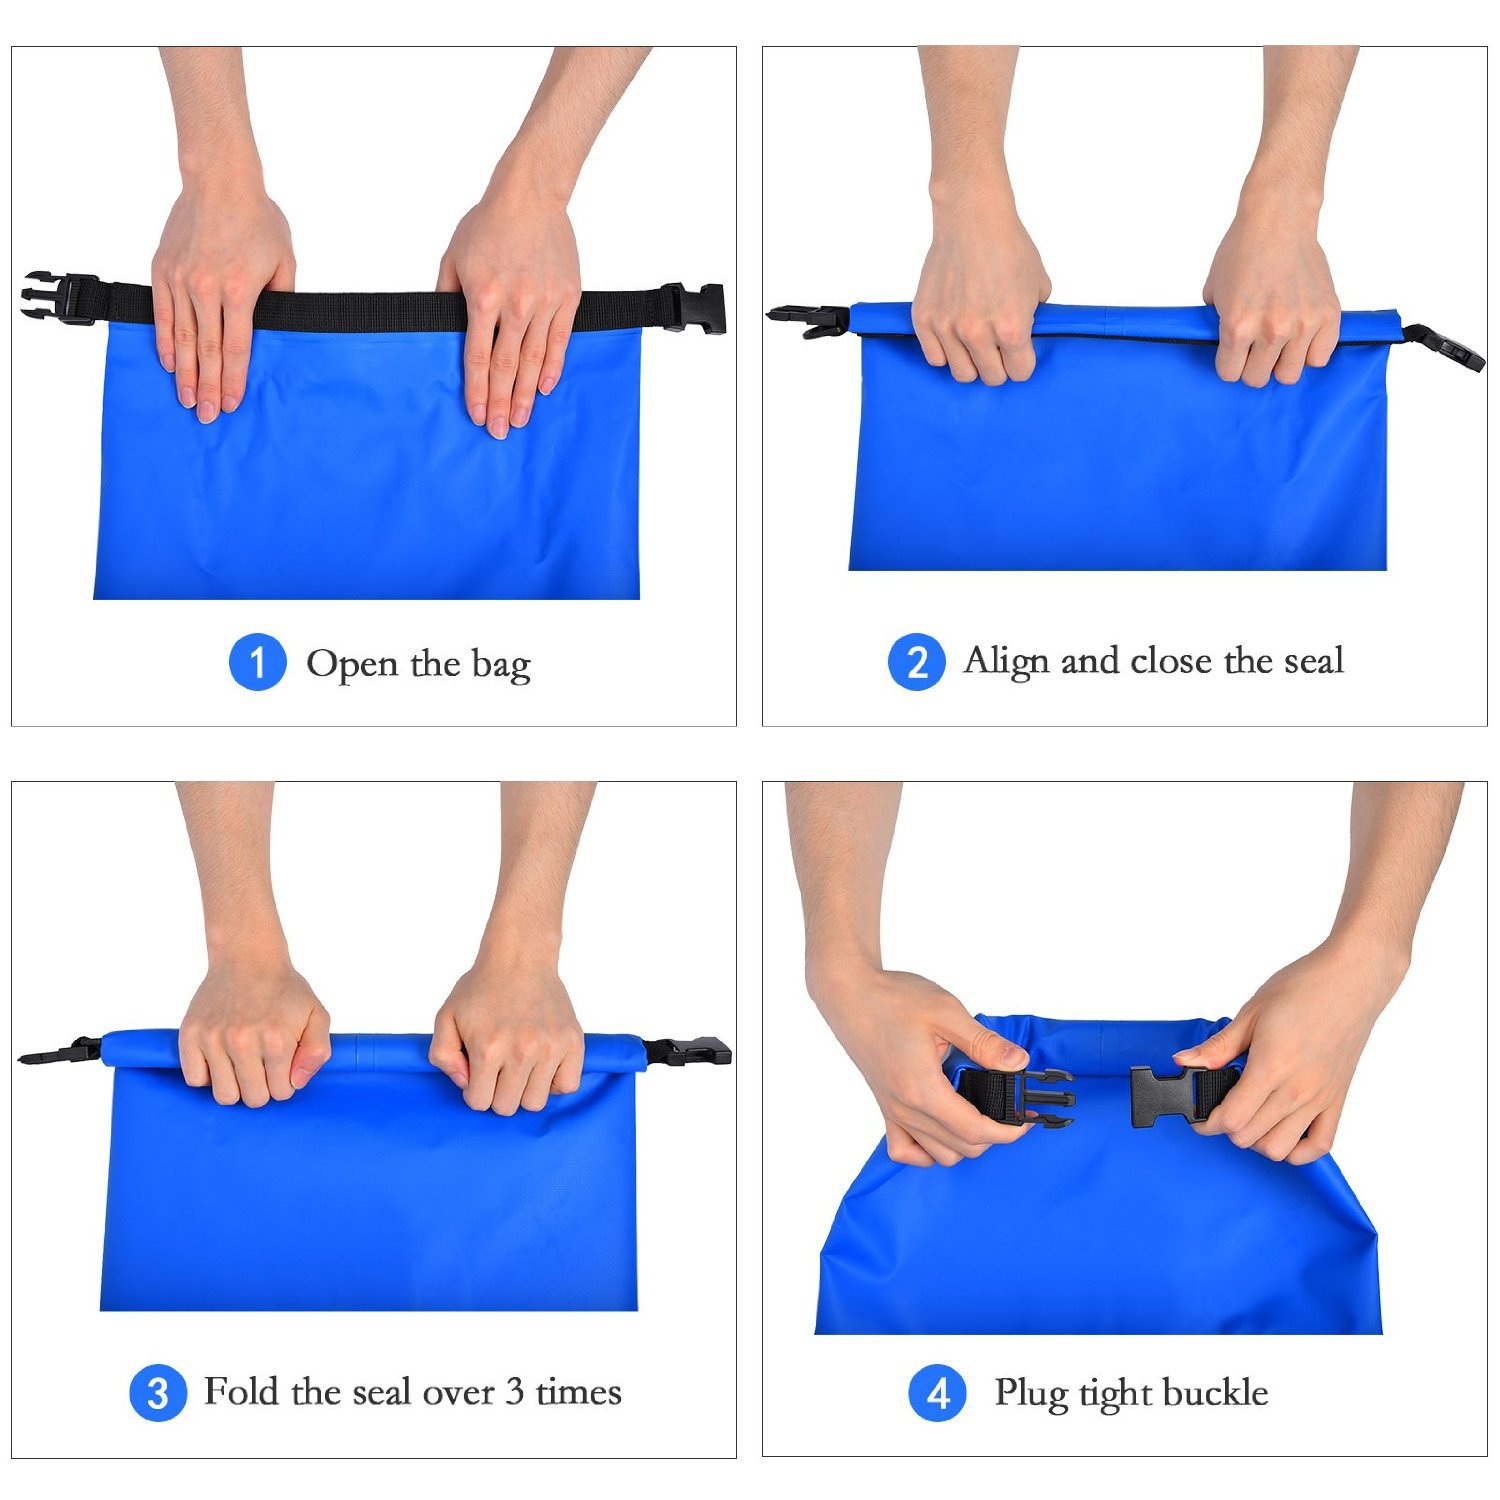 Biking Canoeing Fishing Outdoor Sports and Rafting Gold Coast gear Paddle boarding Hiking Best For Camping Dry Bag Roll Top Waterproof Sack Multiple Sizes /& Colors Includes Shoulder Strap Kayaking